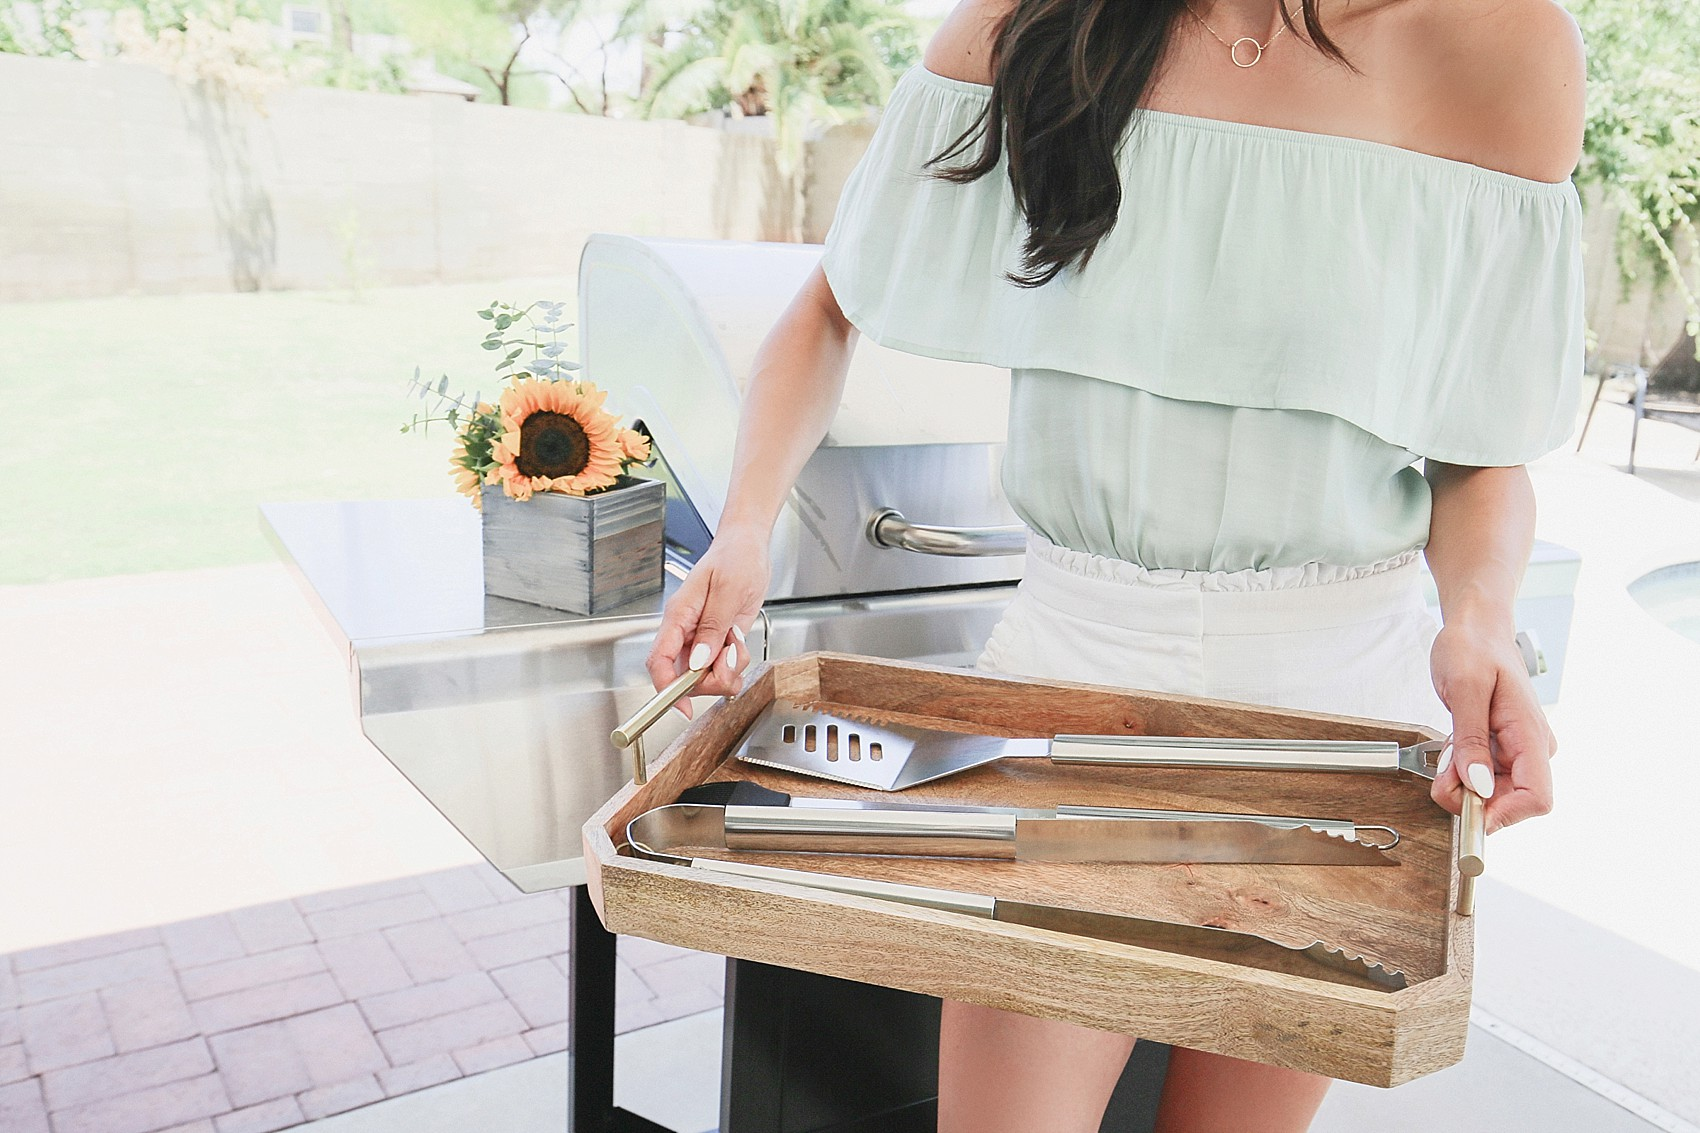 Diana Elizabeth blogger holding tray with bbq utensils in front of a bbq grill